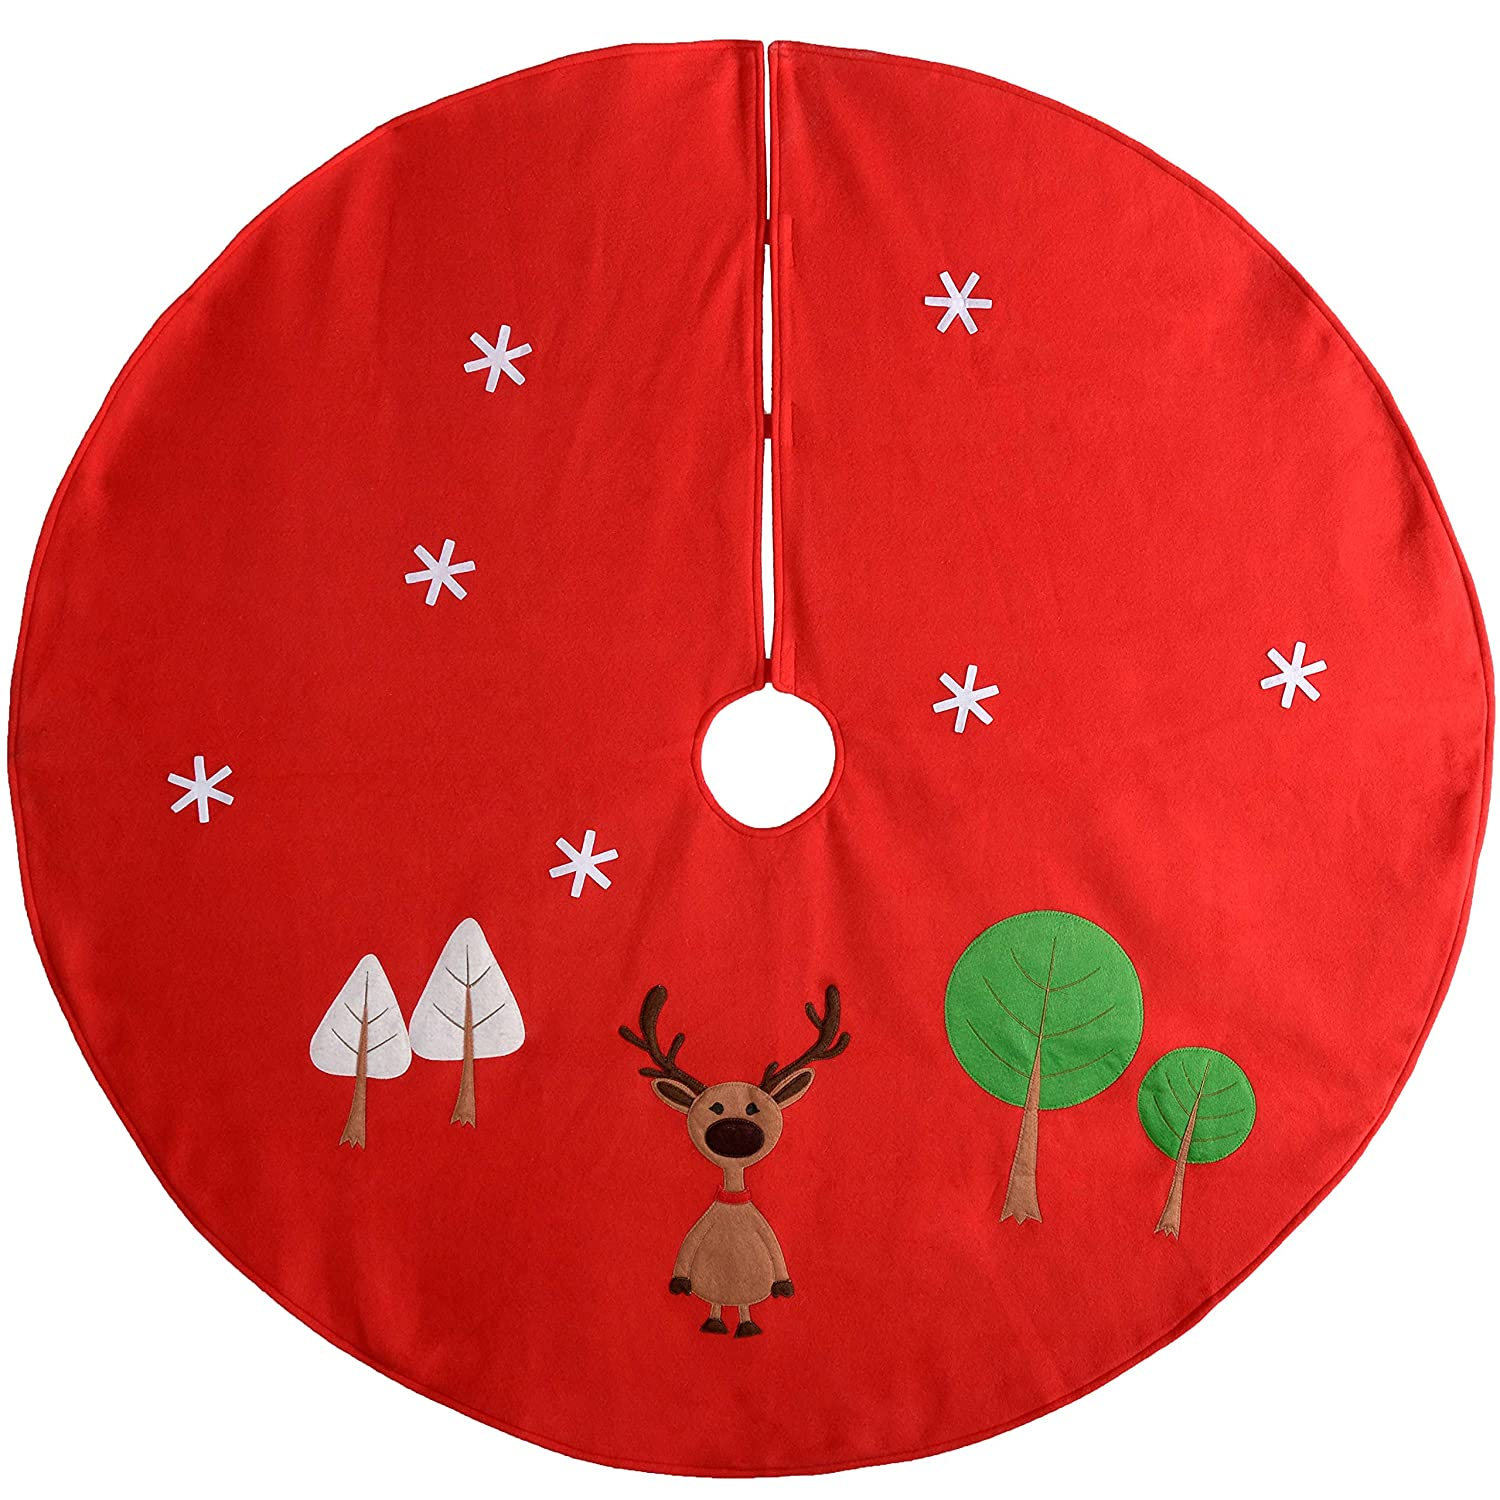 WeRChristmas Christmas Character Tree Skirt Decoration, 120 cm - Large, Multi-Colour WRC-7517